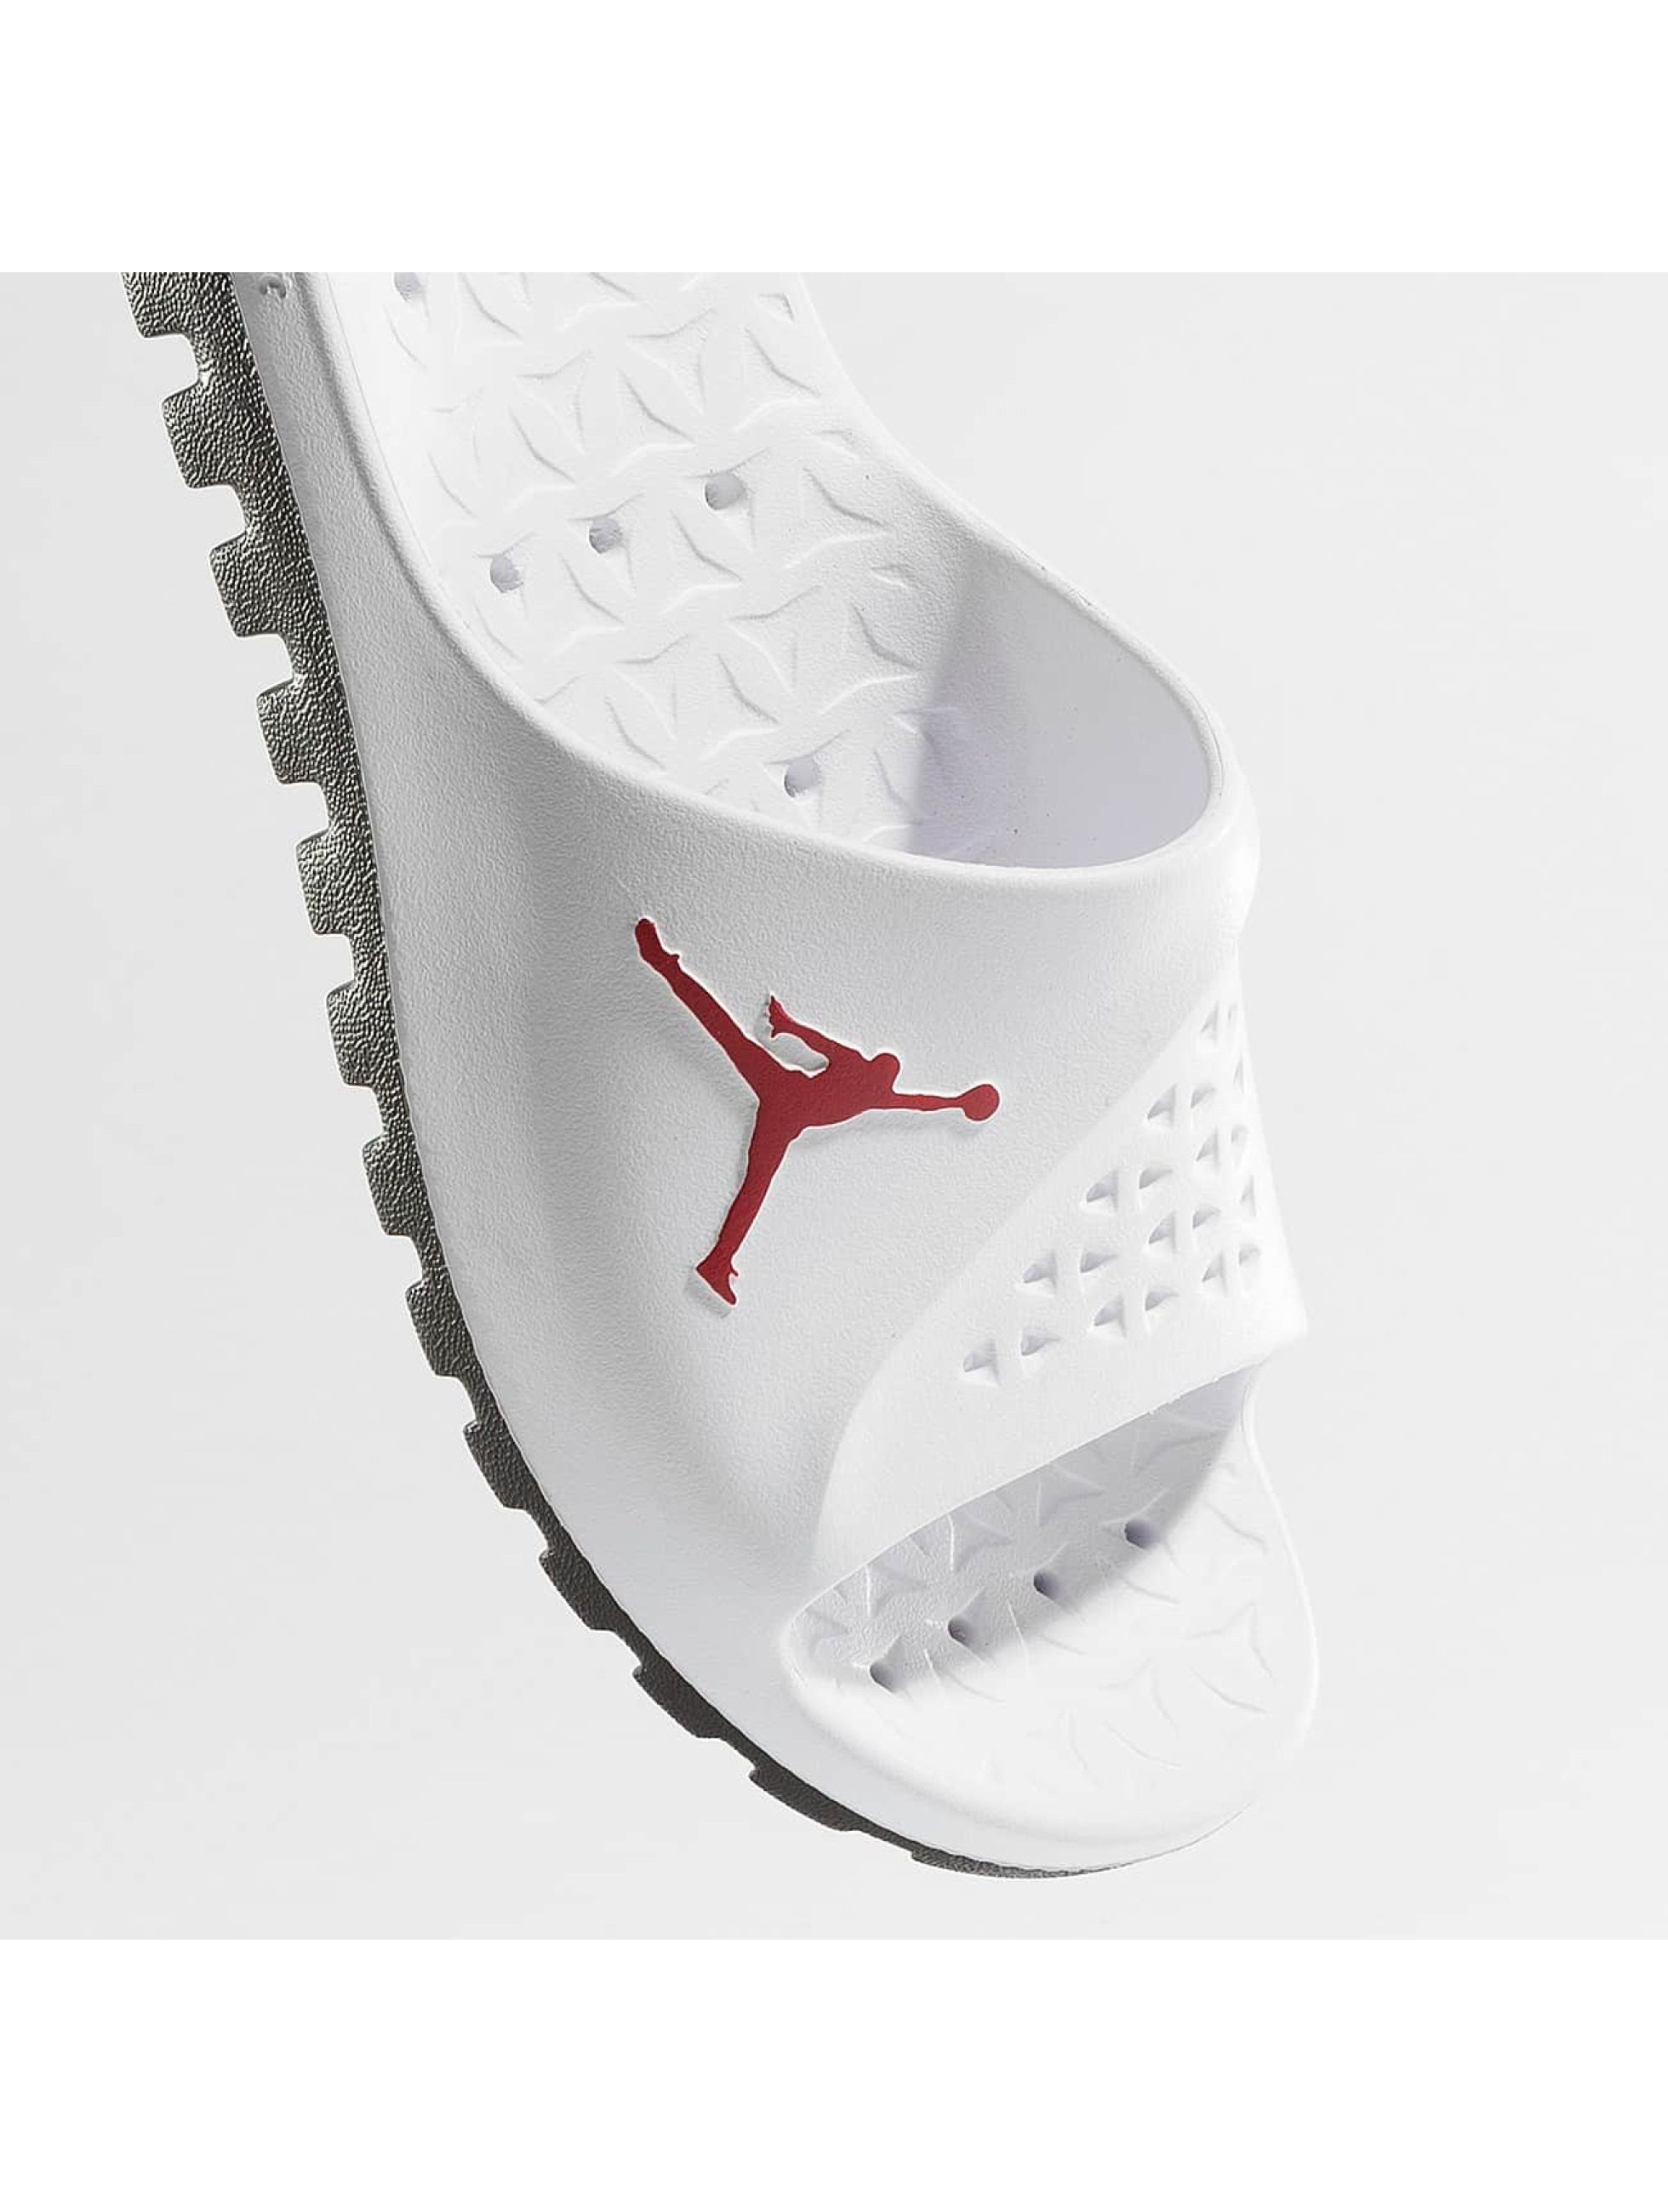 Jordan Chanclas / Sandalias Super.Fly Team blanco